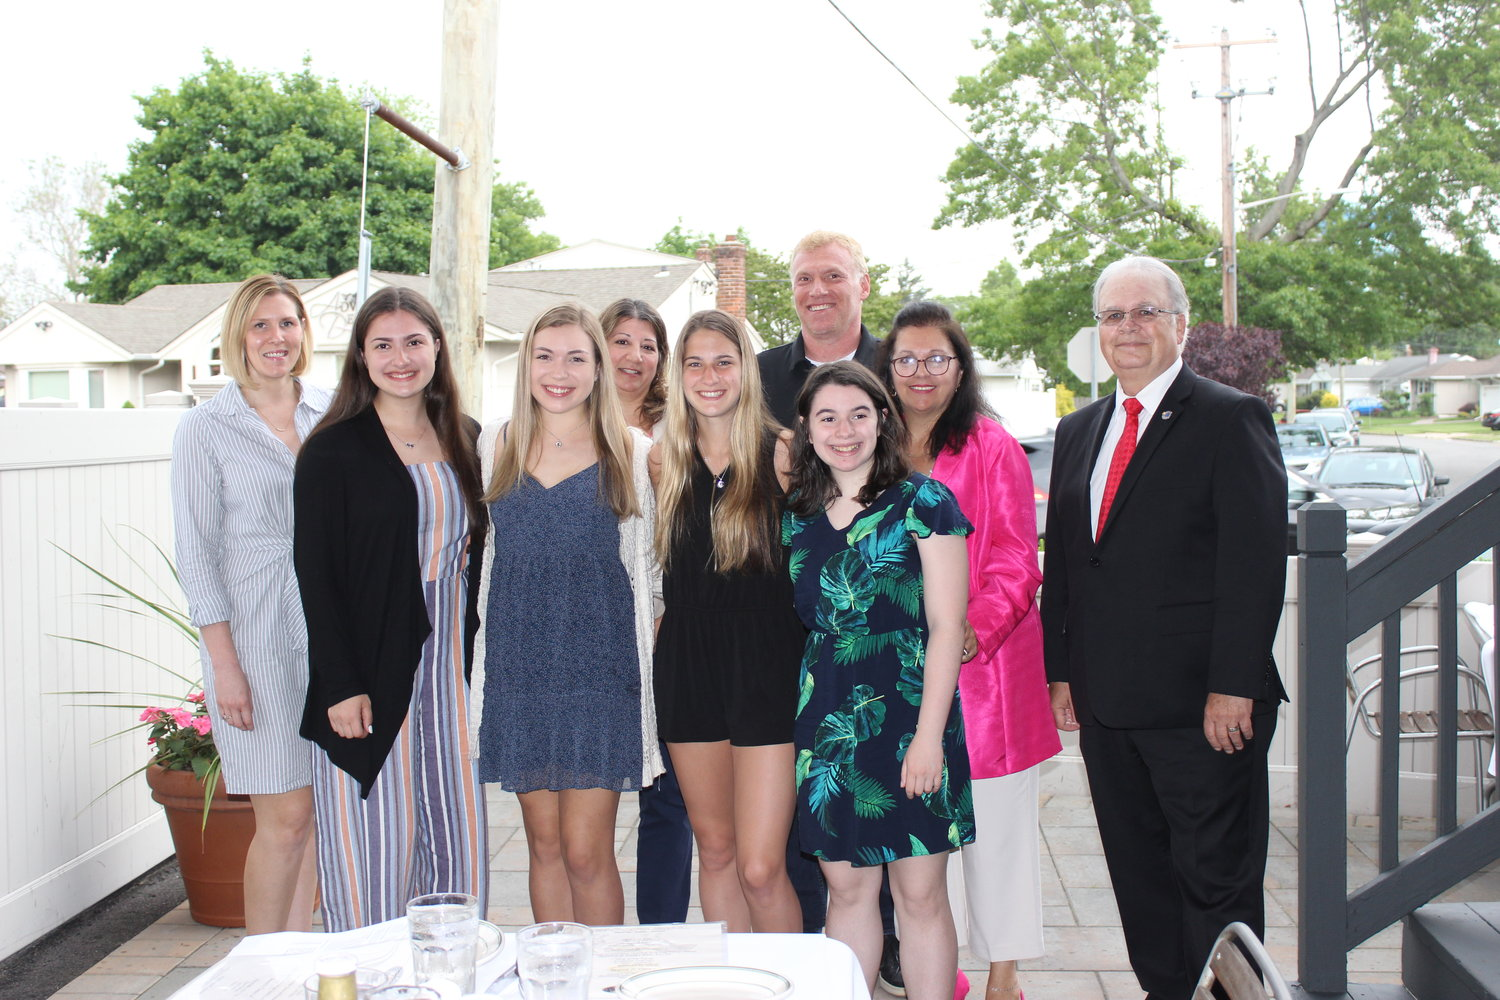 Emily Carman, bottom-left, Kaitlyn Surless, Stefanie Botman and Hailey Schiller earned the East Meadow Chamber of Commerce scholarship. They were with scholarship committee members Lyndsey Gallagher, Rosemary Basmajian, Chamber President Michael Levy, Christine Mooney and Doug Wood at the chamber's June 5 meeting at Major's Steakhouse in East Meadow.